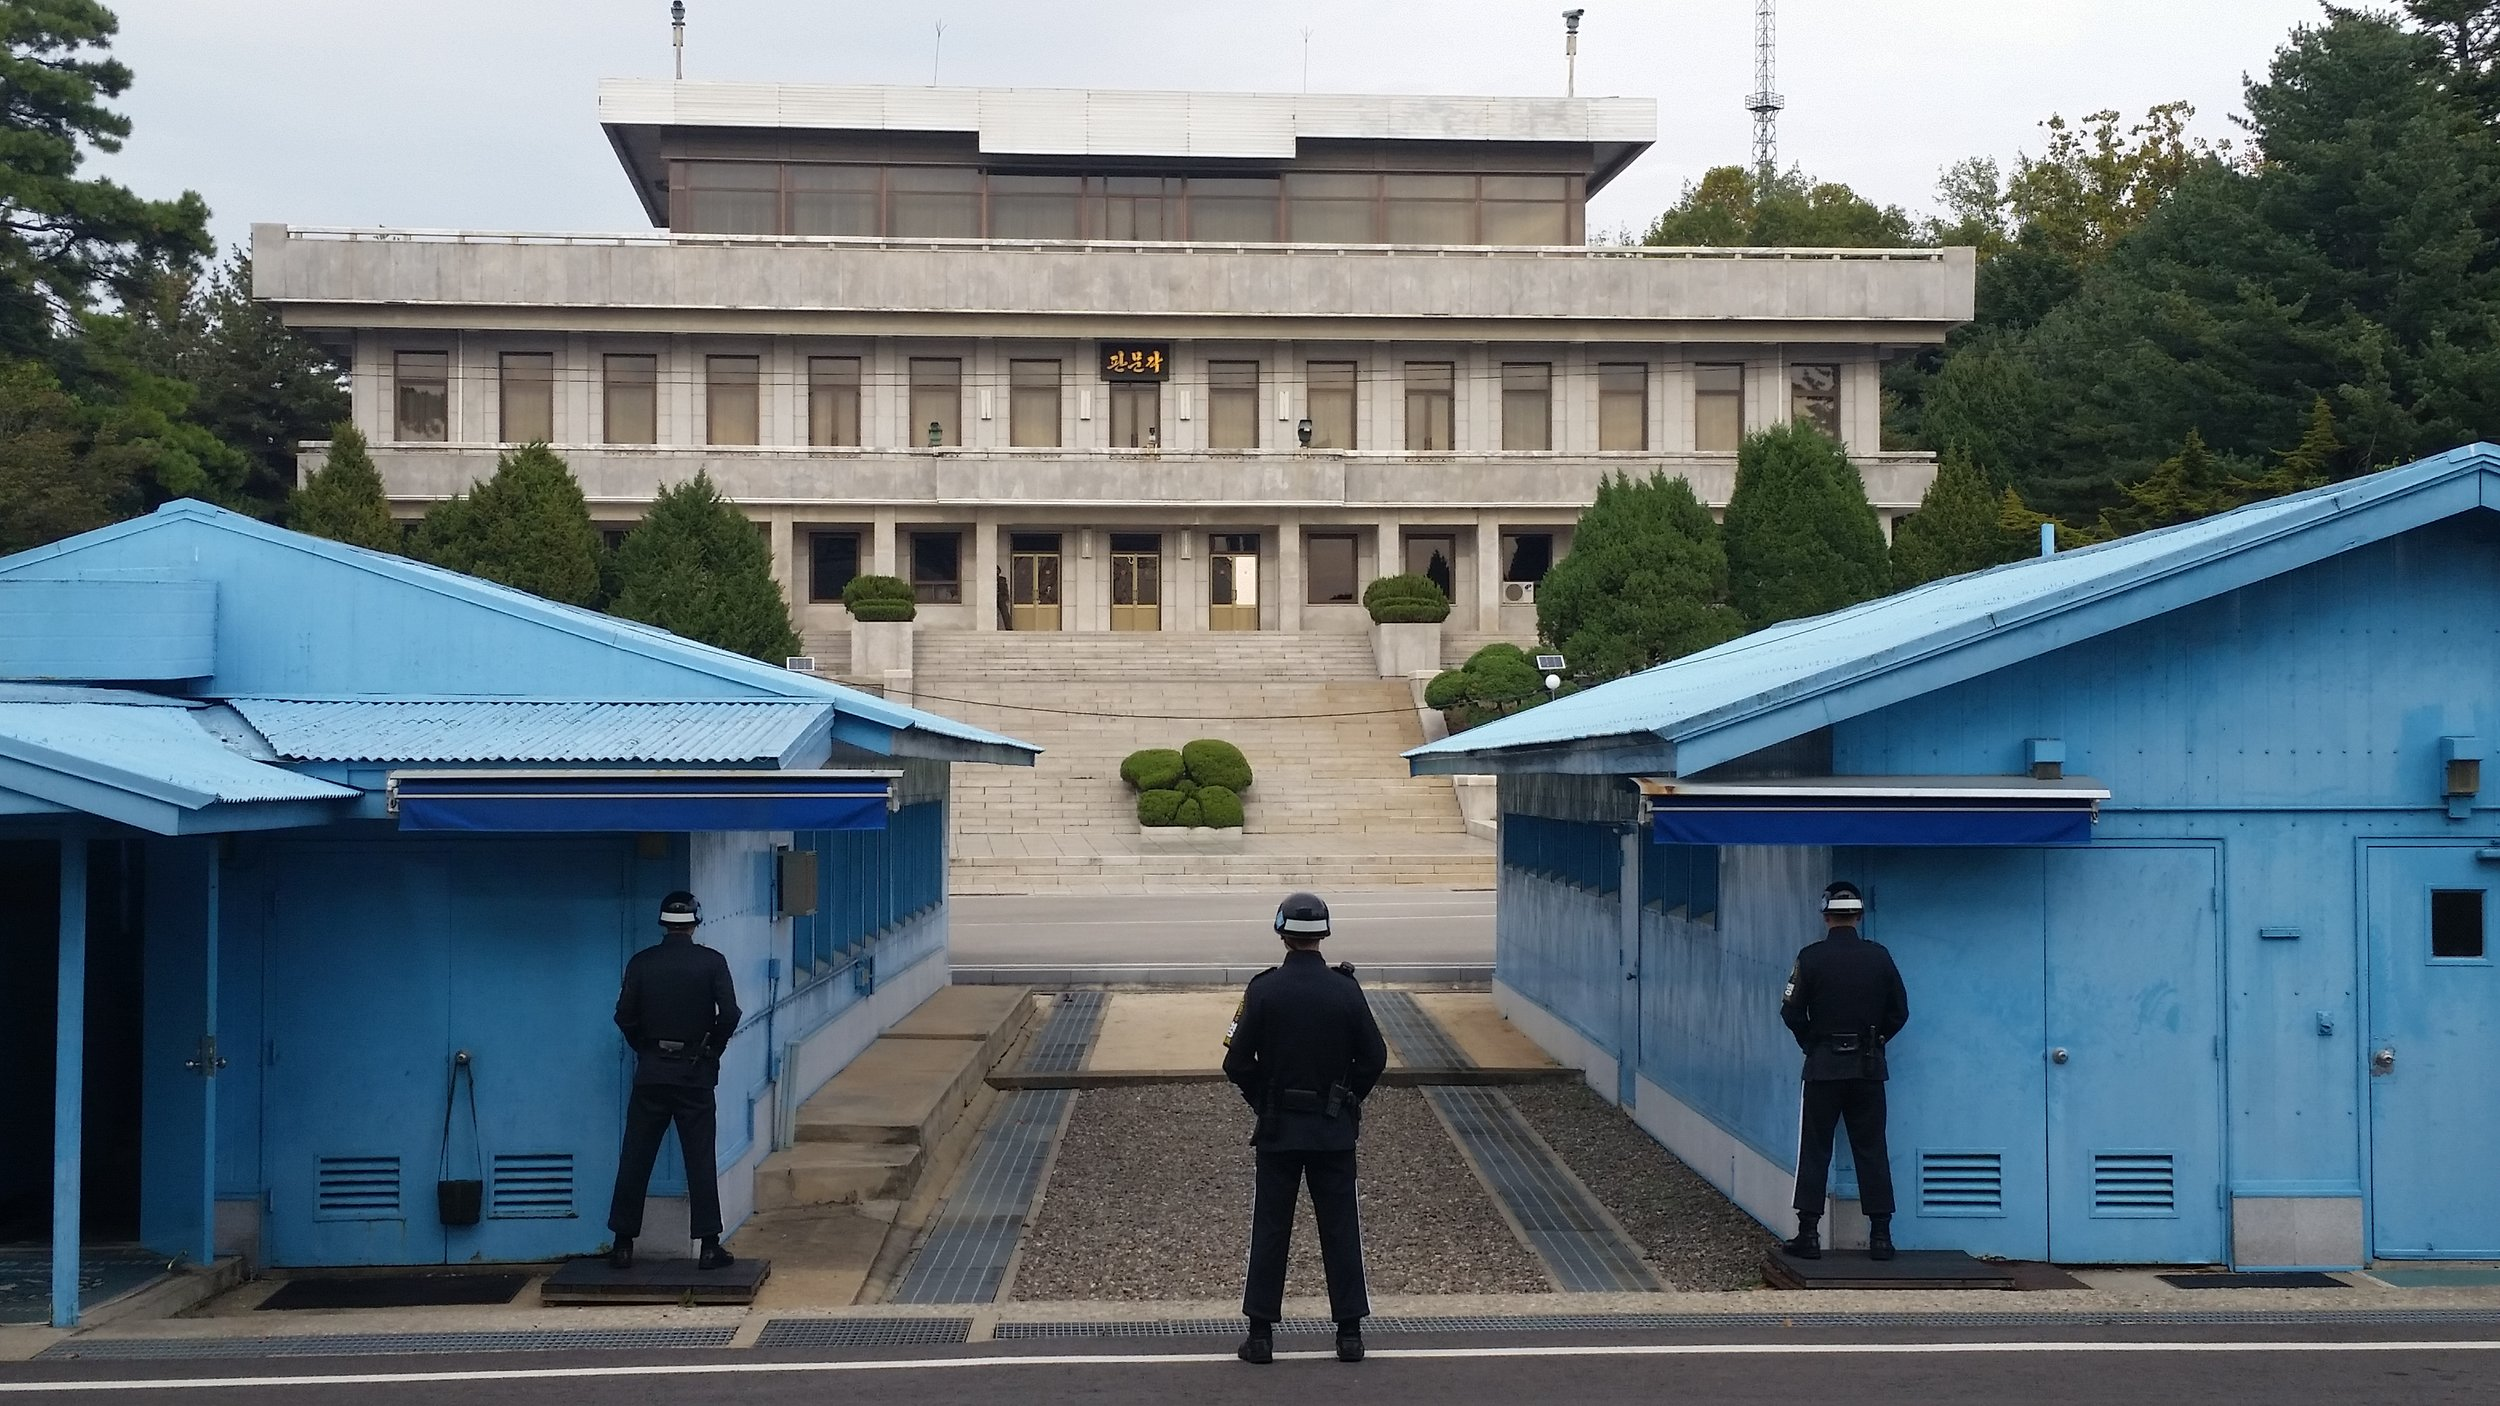 Conference buildings straddle the demarcation line between North and South Korea.